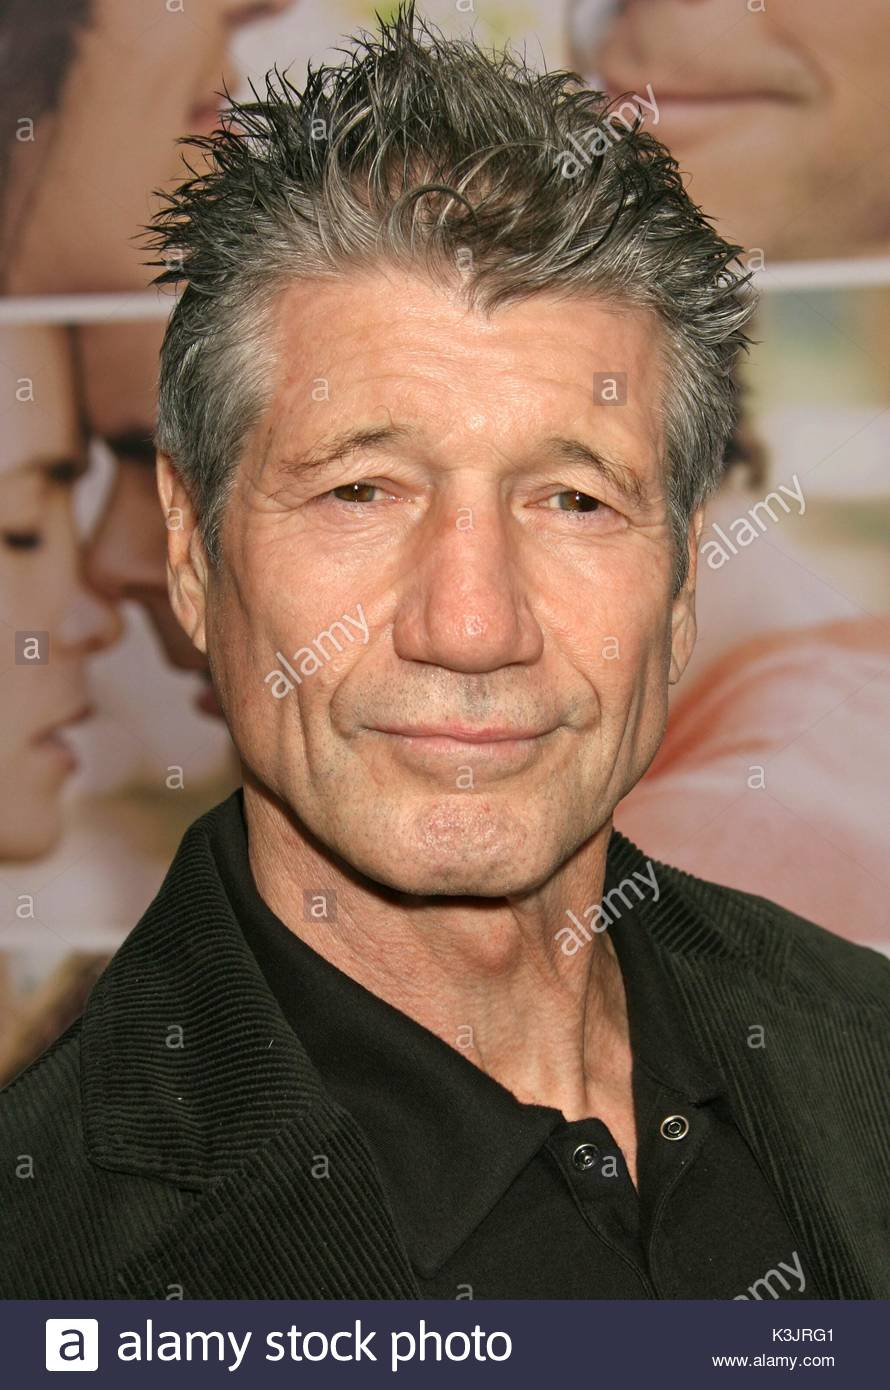 Fred Ward Stock Photos & Fred Ward Stock Images - Alamy